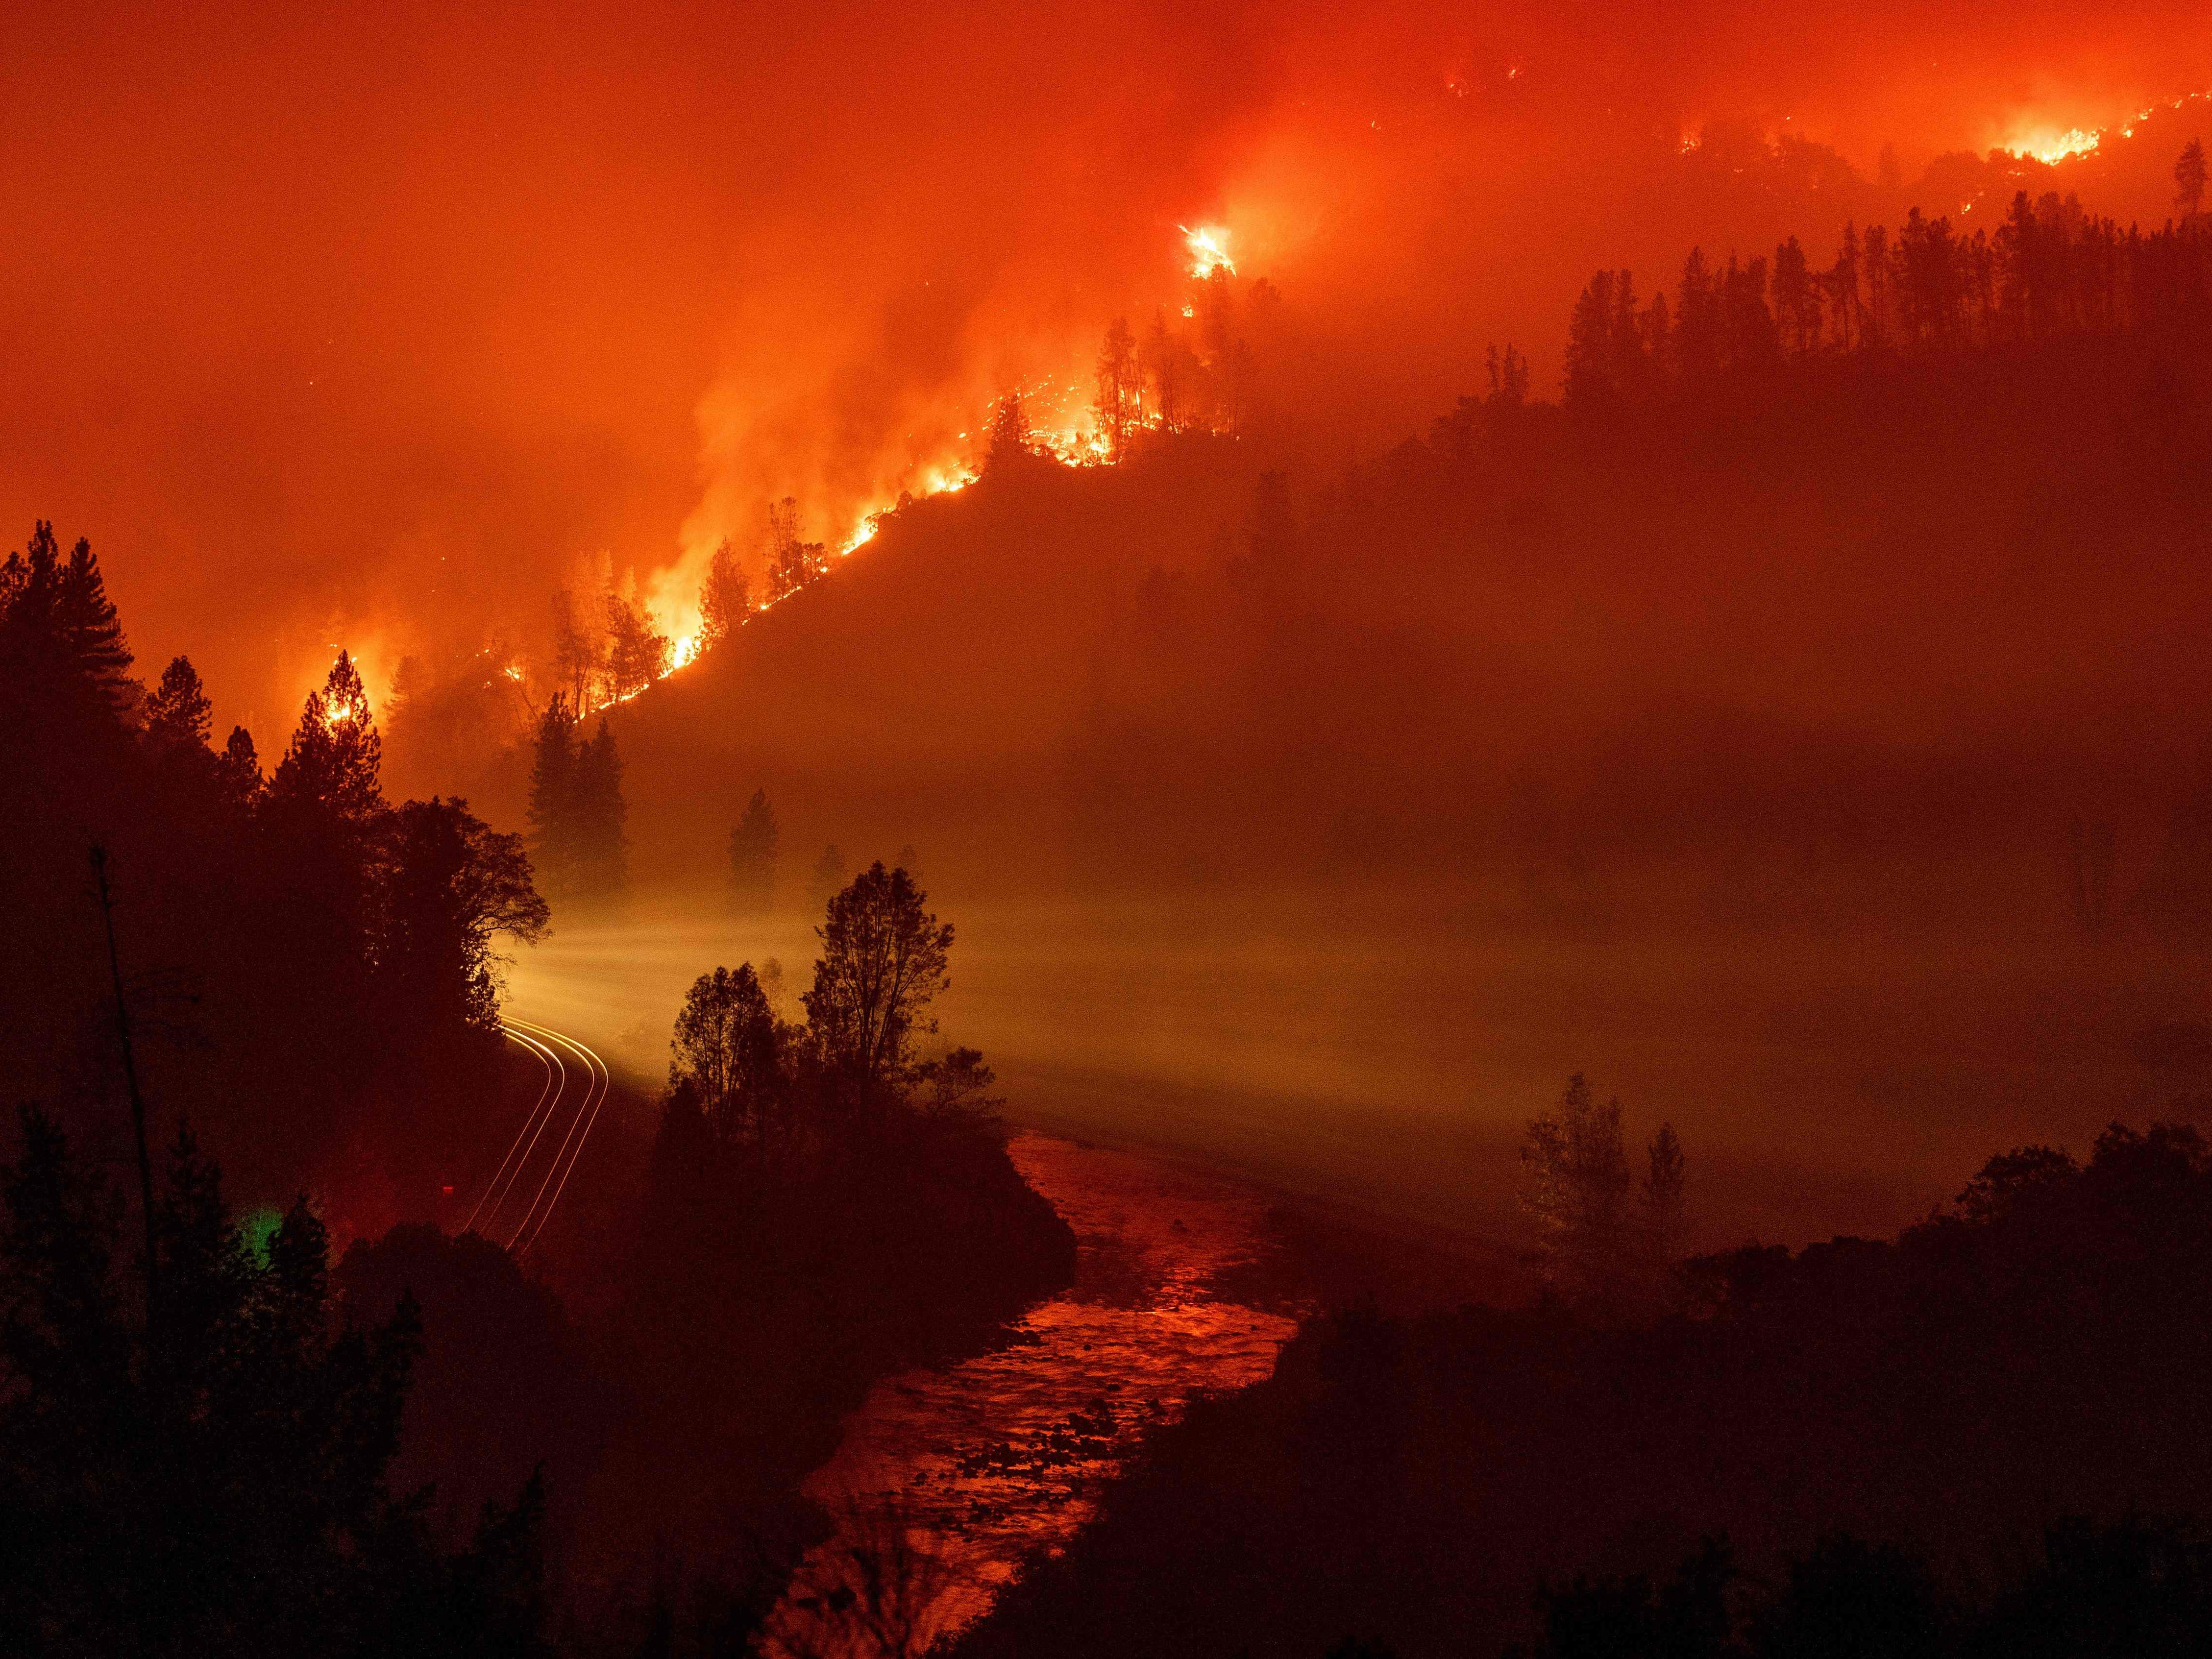 Light from a train is seen as it rounds a bend near the Sacramento River as flames from the Delta Fire fill a valley in Delta, Calif. on September 6, 2018.